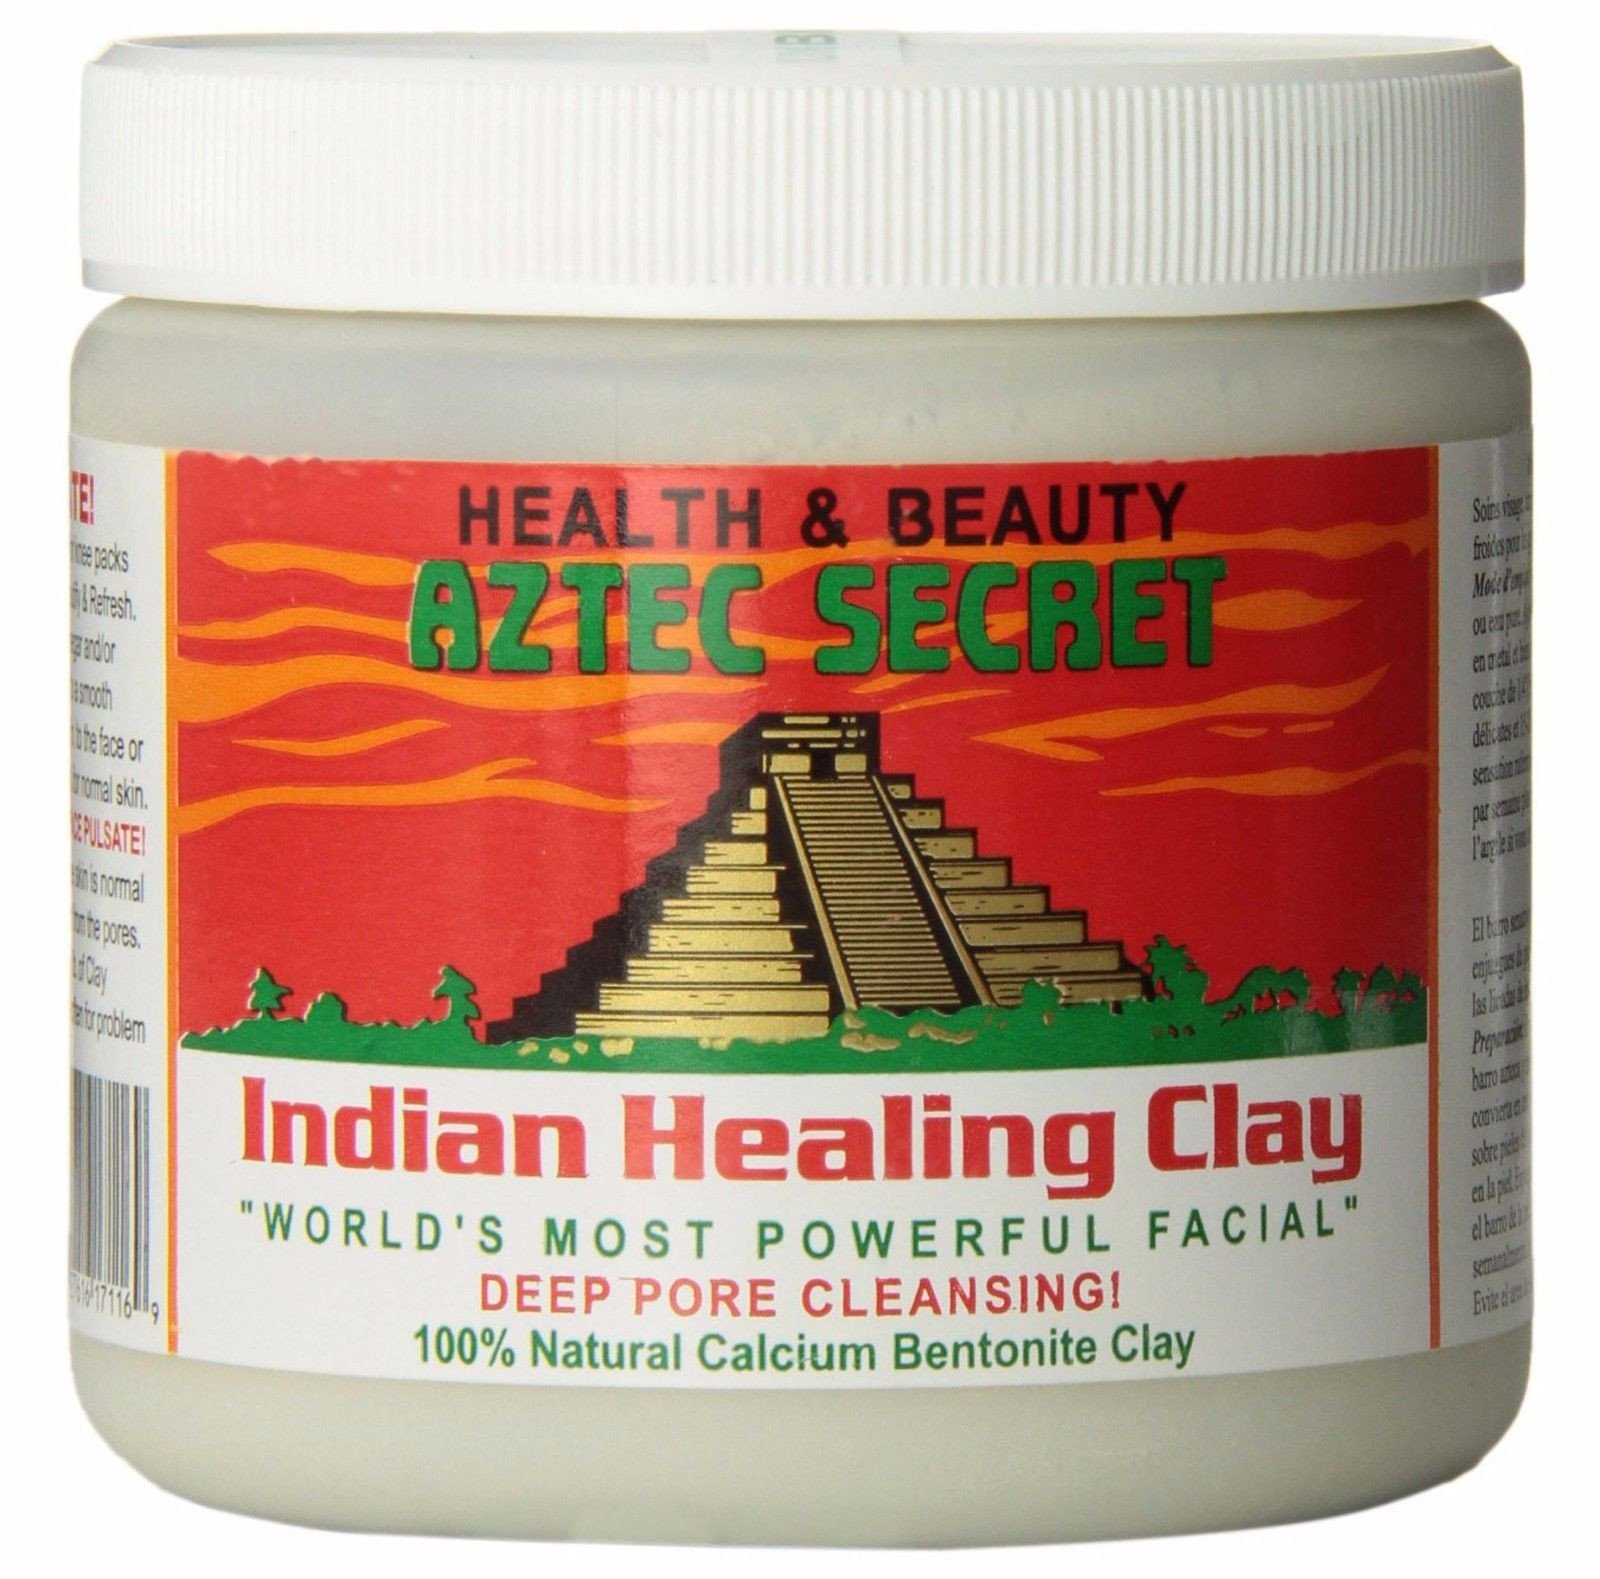 Bentonite Clay Mask-- Mix a spoonful or two of bentonite clay powder with apple cider vinegar until it forms a paste. Spread it all over your face and neck, being careful not to get it too close to your eyes. Let it dry for fifteen or twenty minutes, then remove with a warm washcloth. (Image: Courtesy Aztec Beauty)